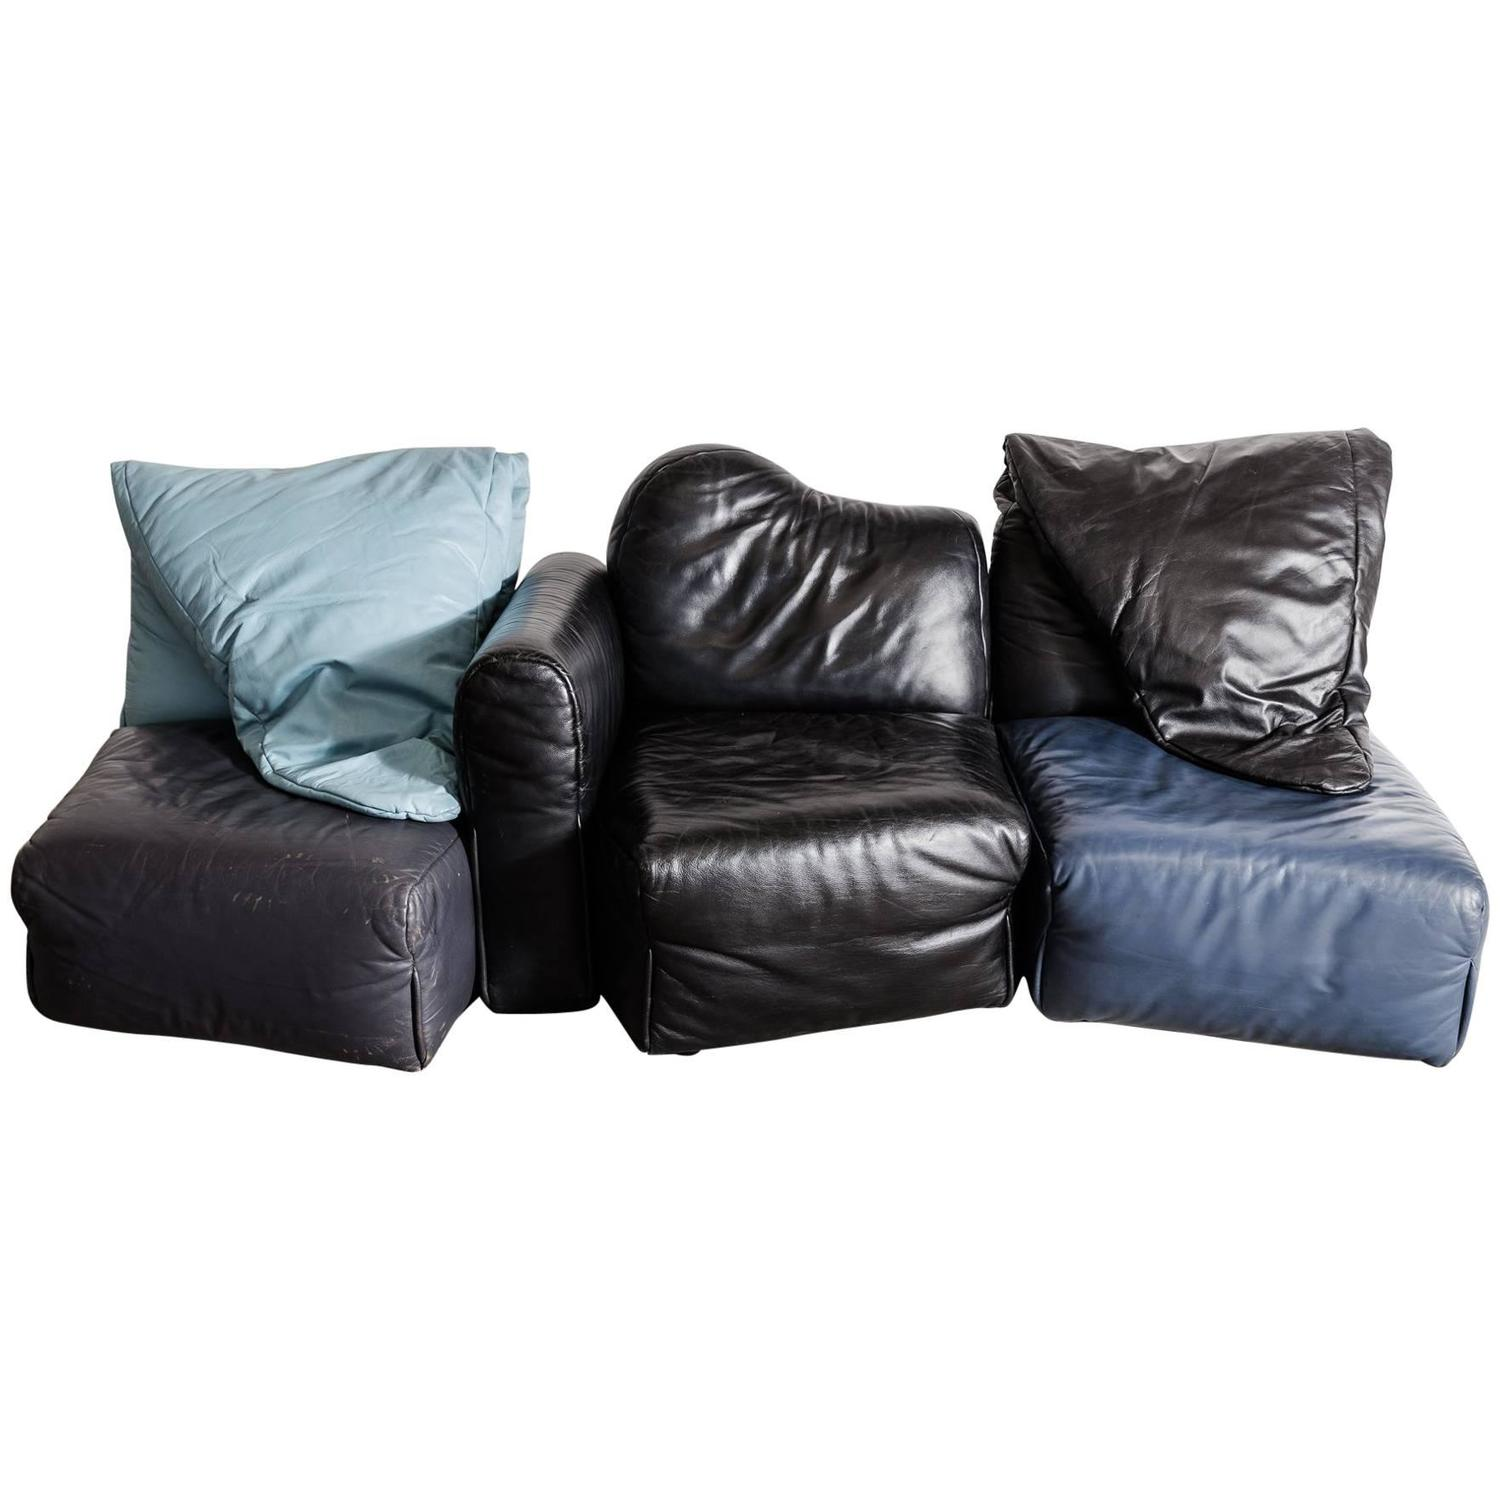 Gaetano Pesce Furniture Chairs Sofas Decor & More 84 For Sale